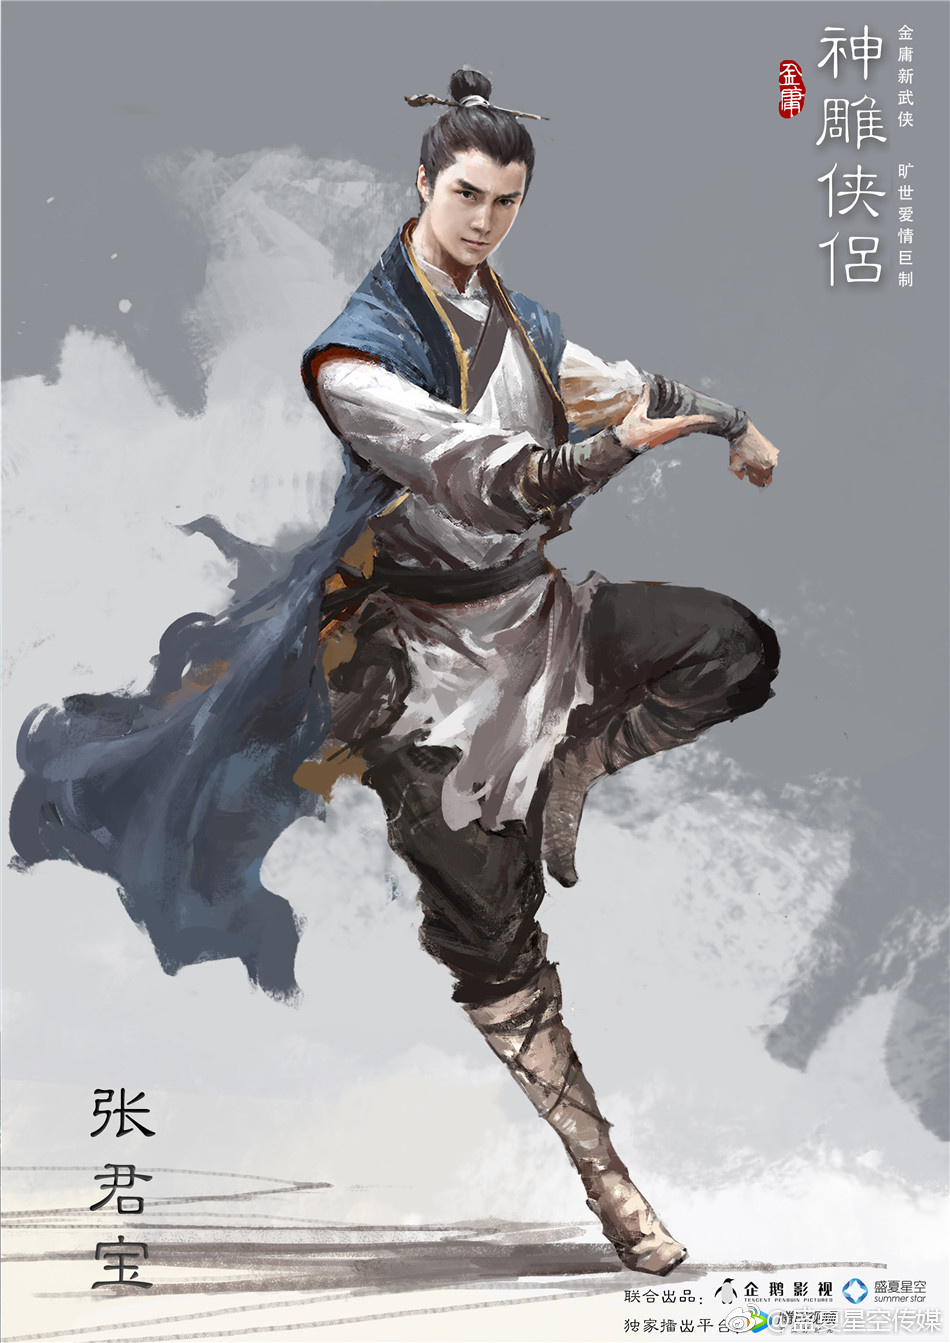 Condor Heroes gets a remake and sparks nationwide search for